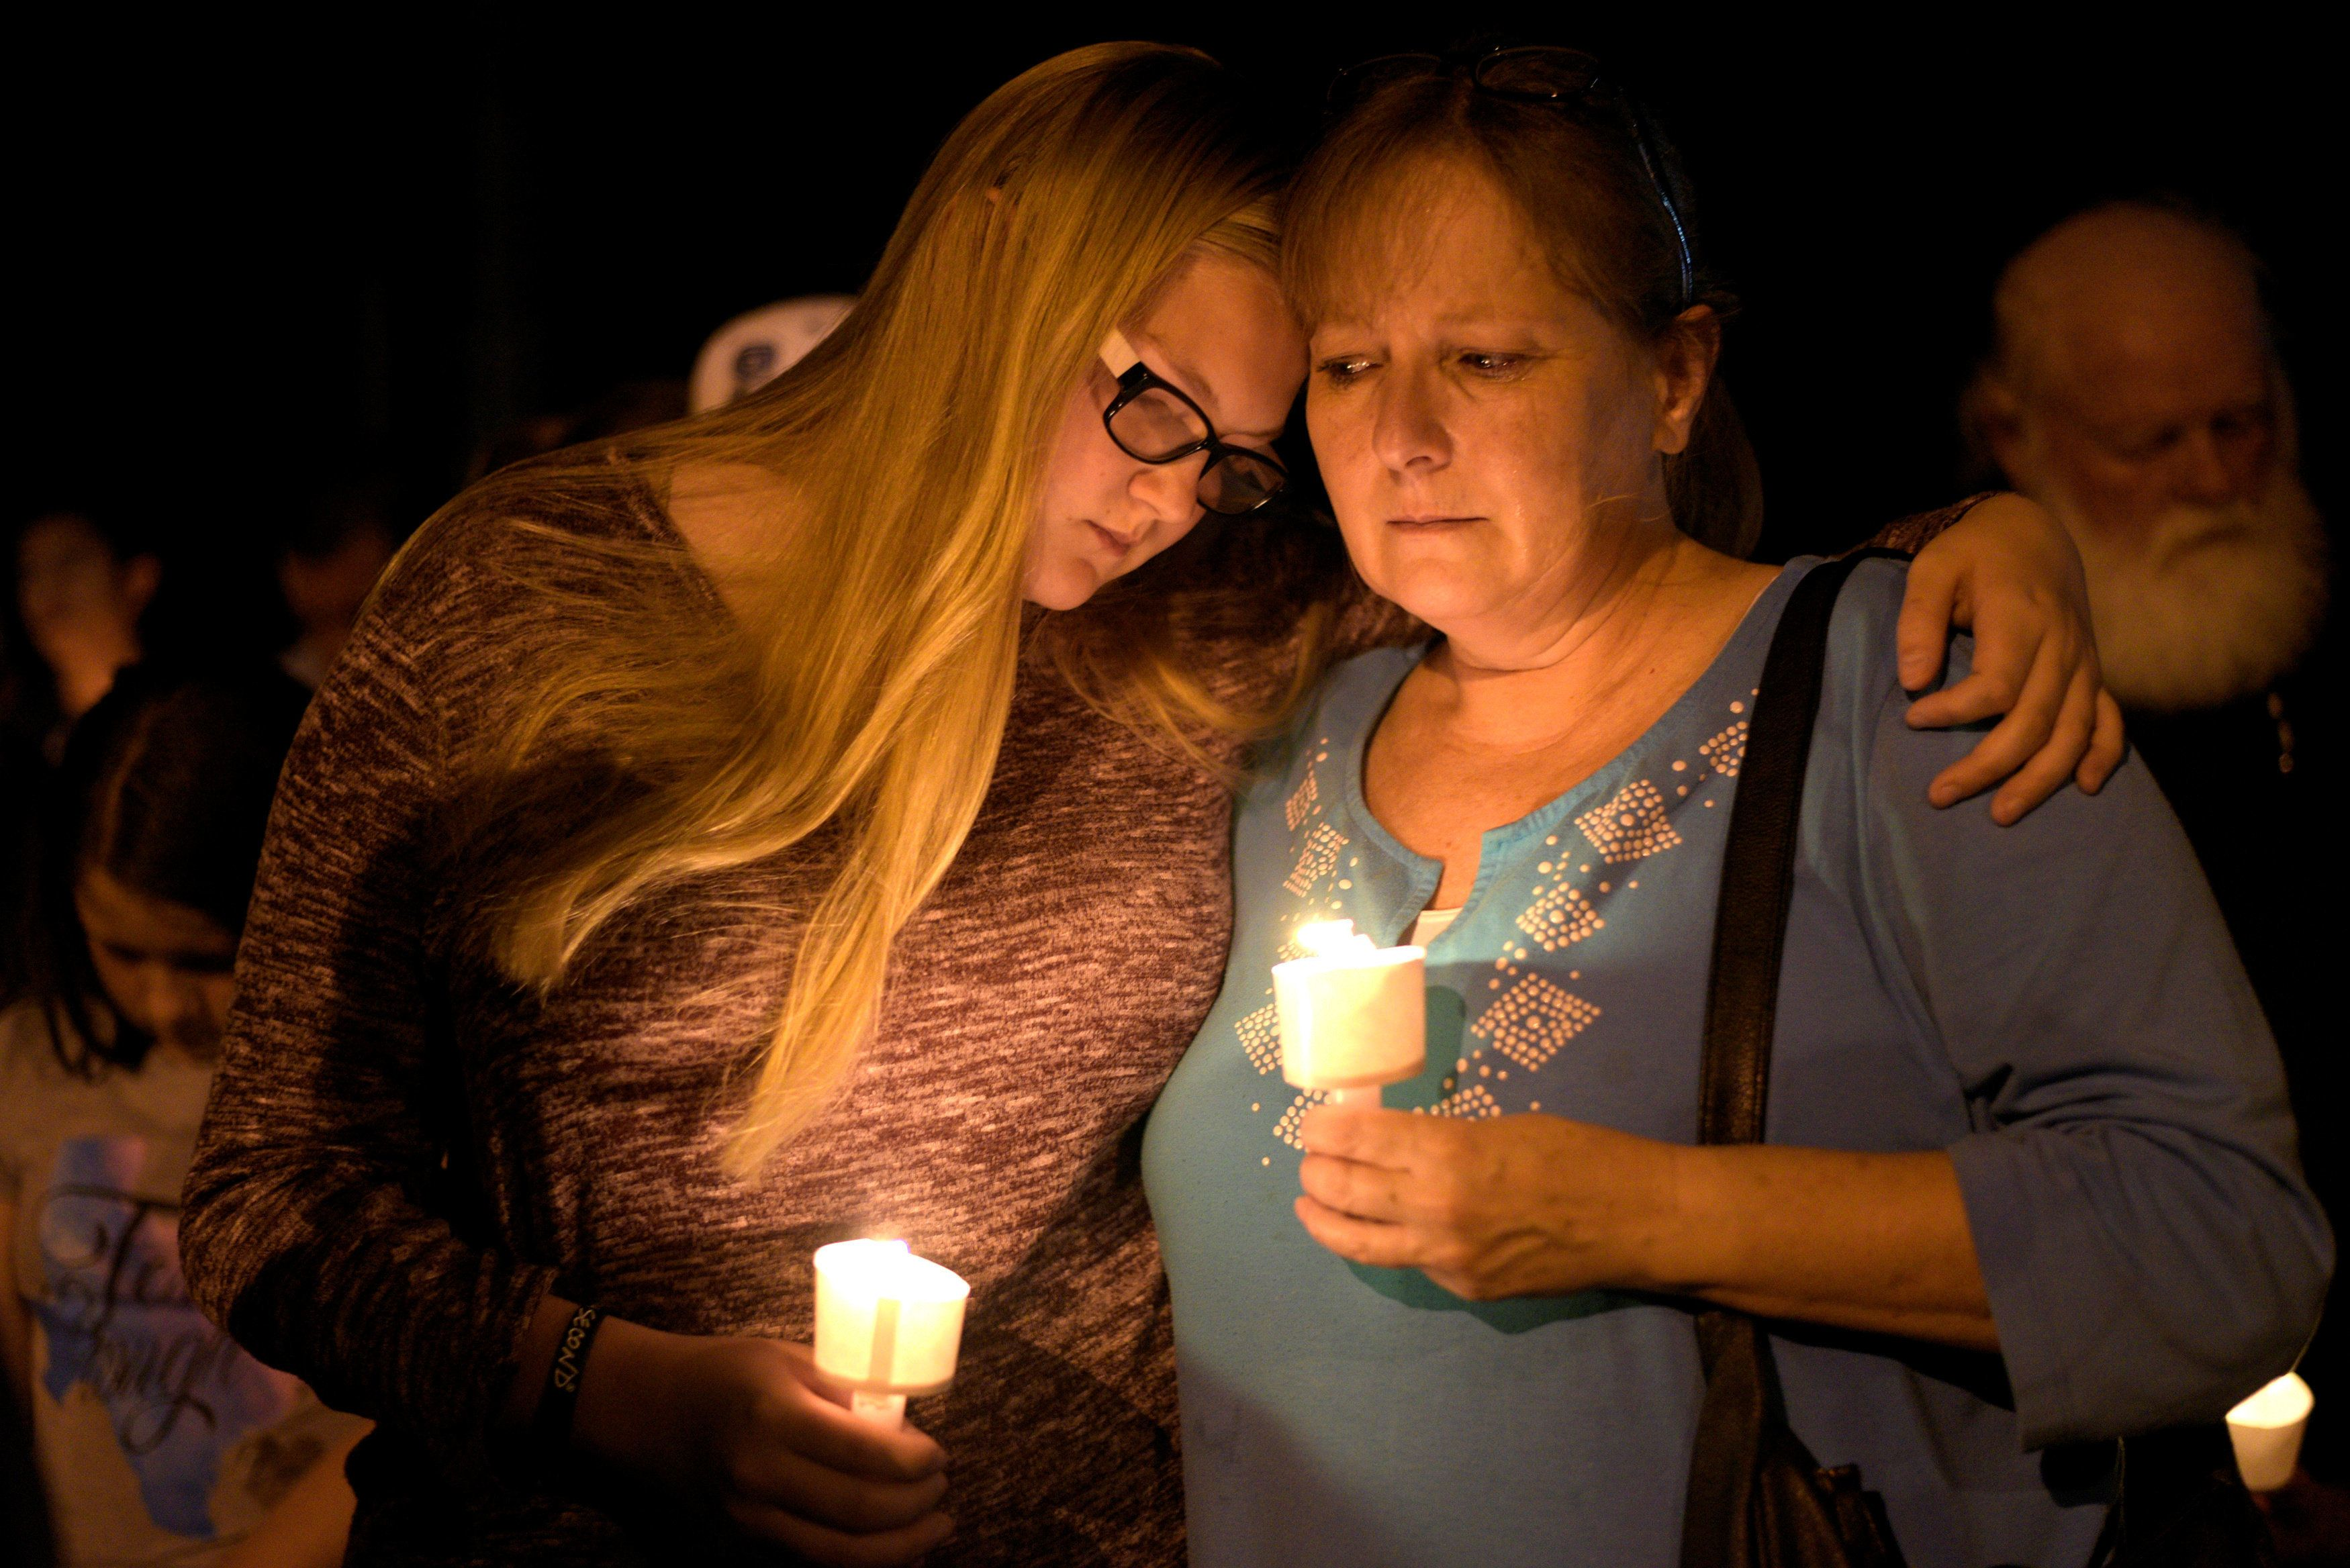 Terri and Brooke Kalinec attend a candle light vigil after a mass shooting at the First Baptist Church in Sutherland Springs, Texas, U.S., November 5, 2017.   REUTERS/Sergio Flores